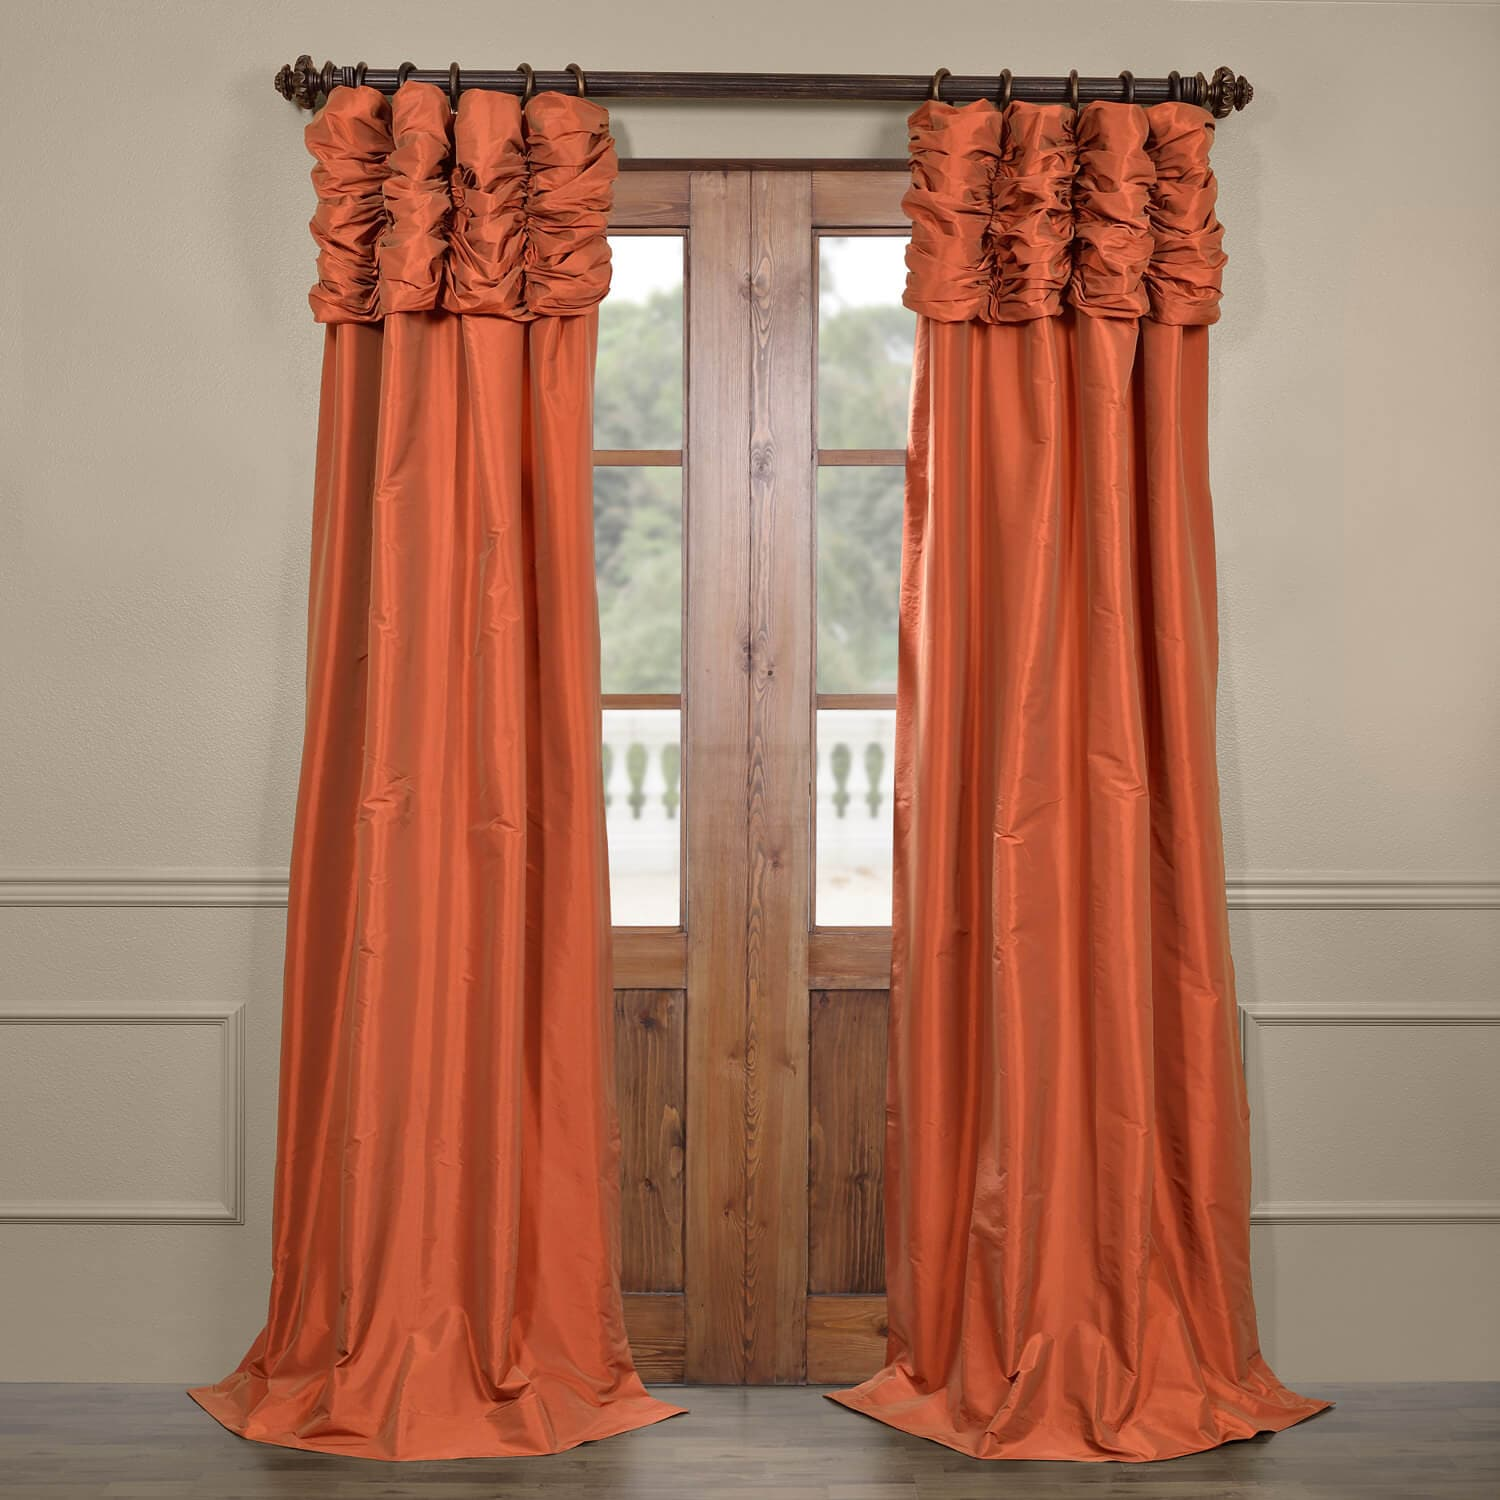 Get Harvest Orange Ruched Faux Solid Taffeta Curtains